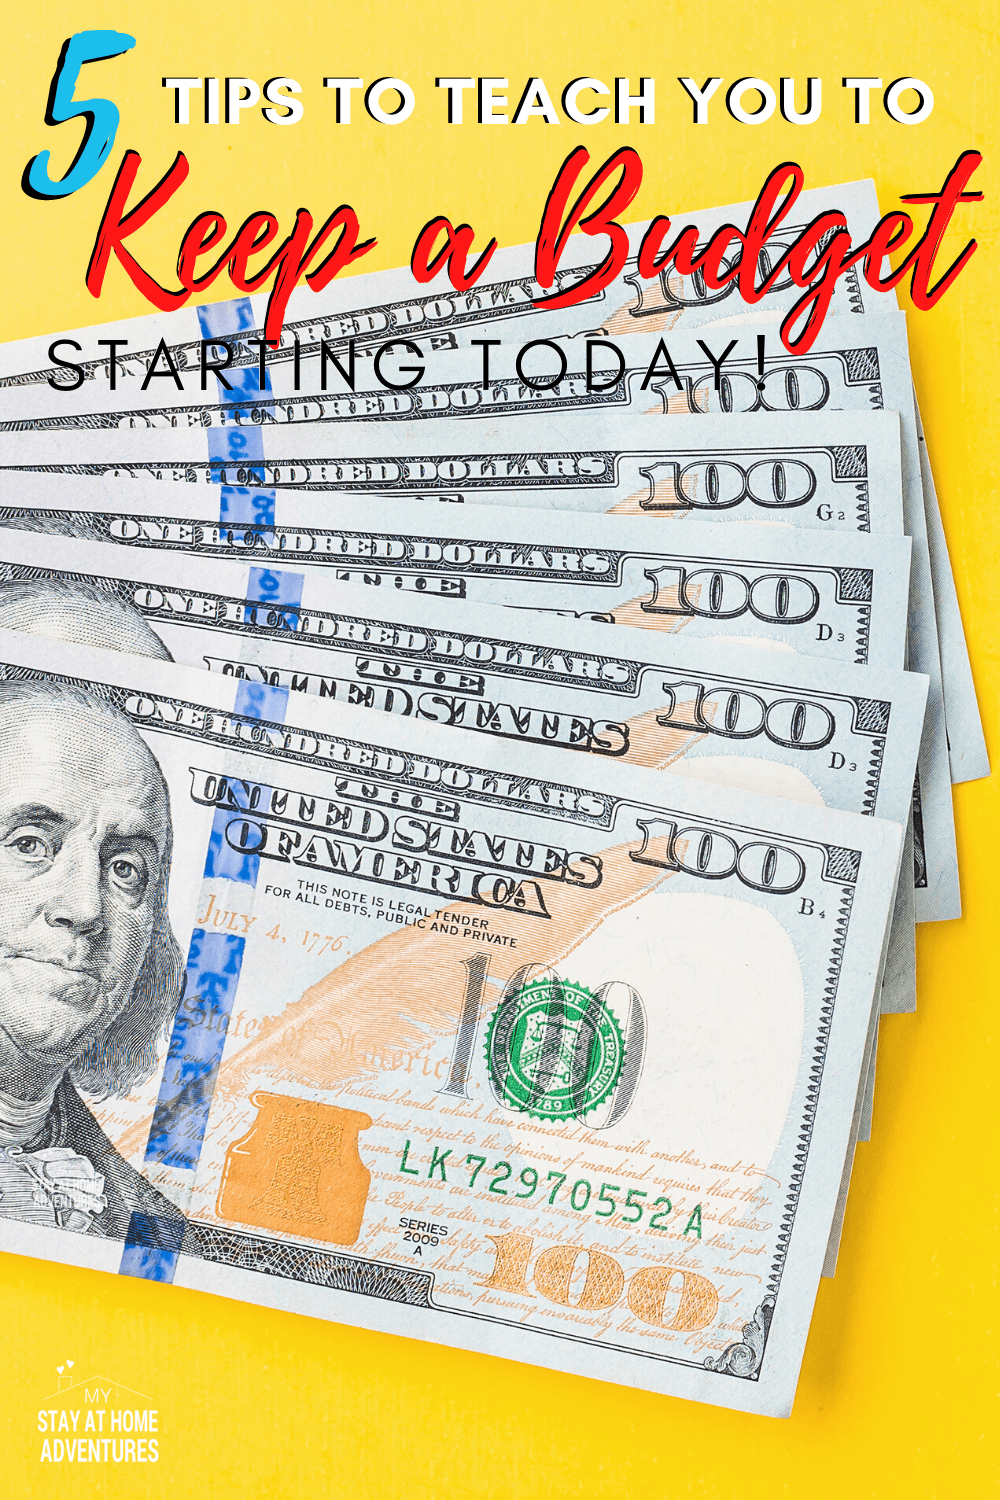 Starting a budget is not that hard; keeping it is! Learn five ways to how to keep a budget starting today that are real and honest. #budgeting #budget #reallife #moneytips #howto via @mystayathome